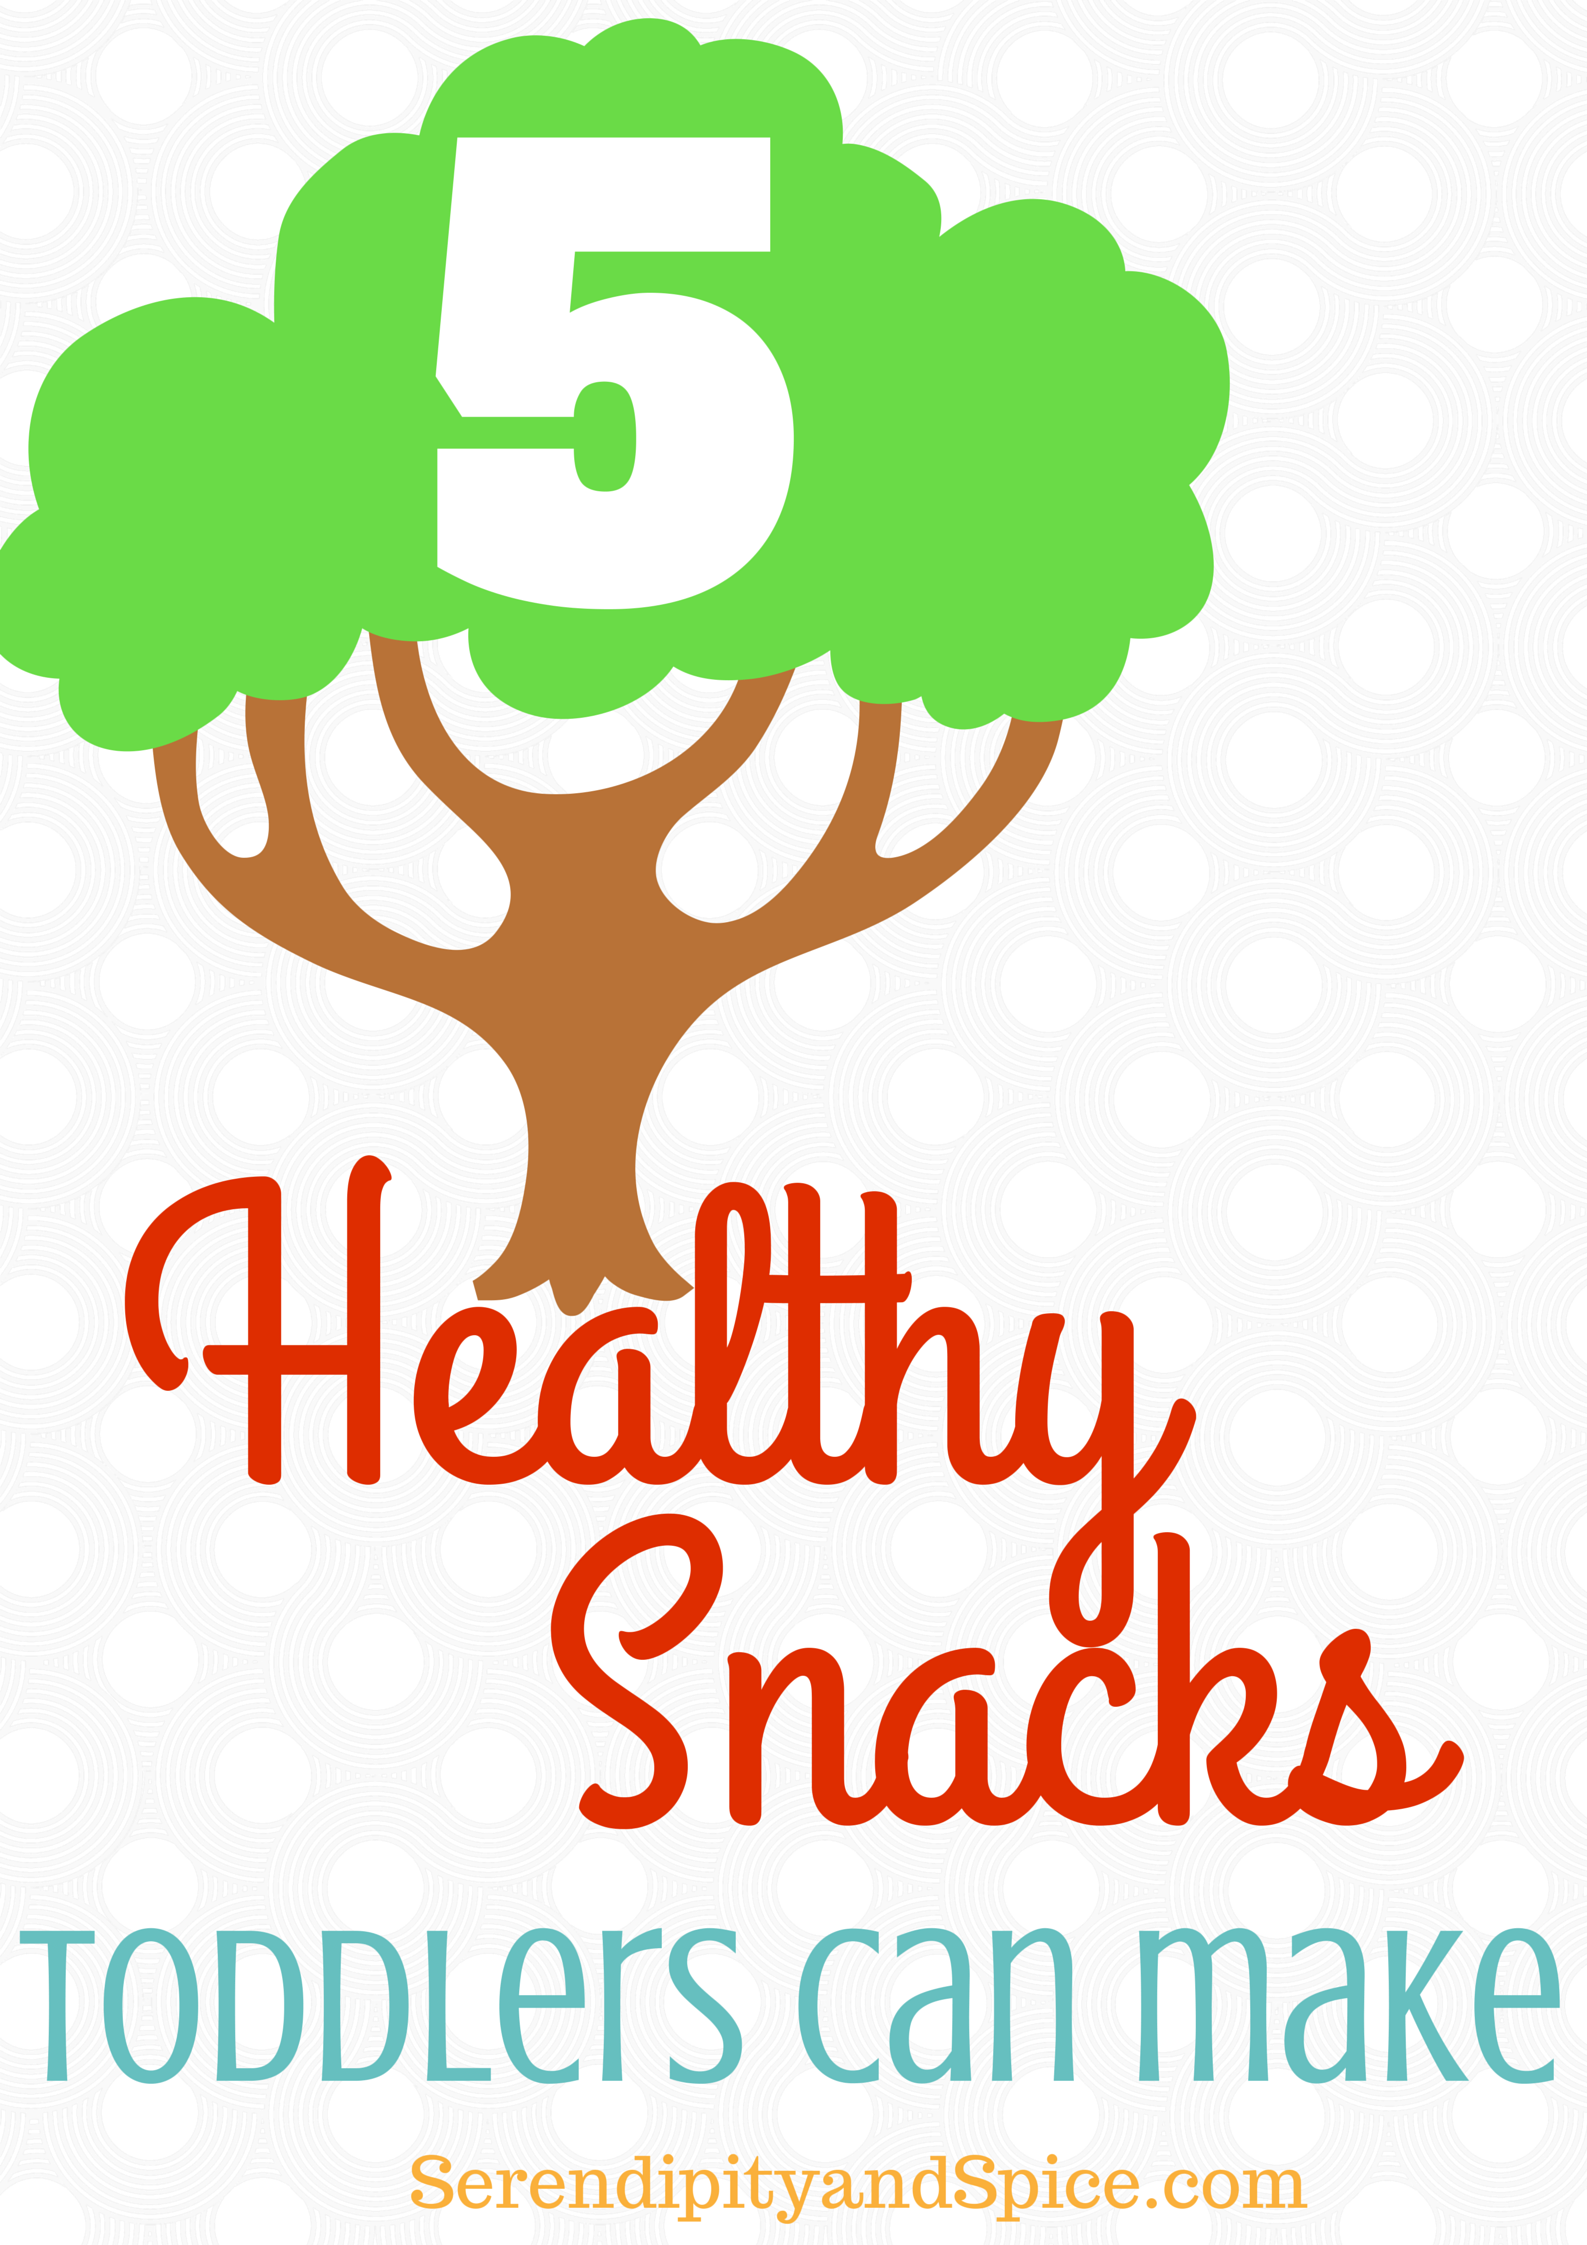 Simple Healthy Snacks for Toddlers